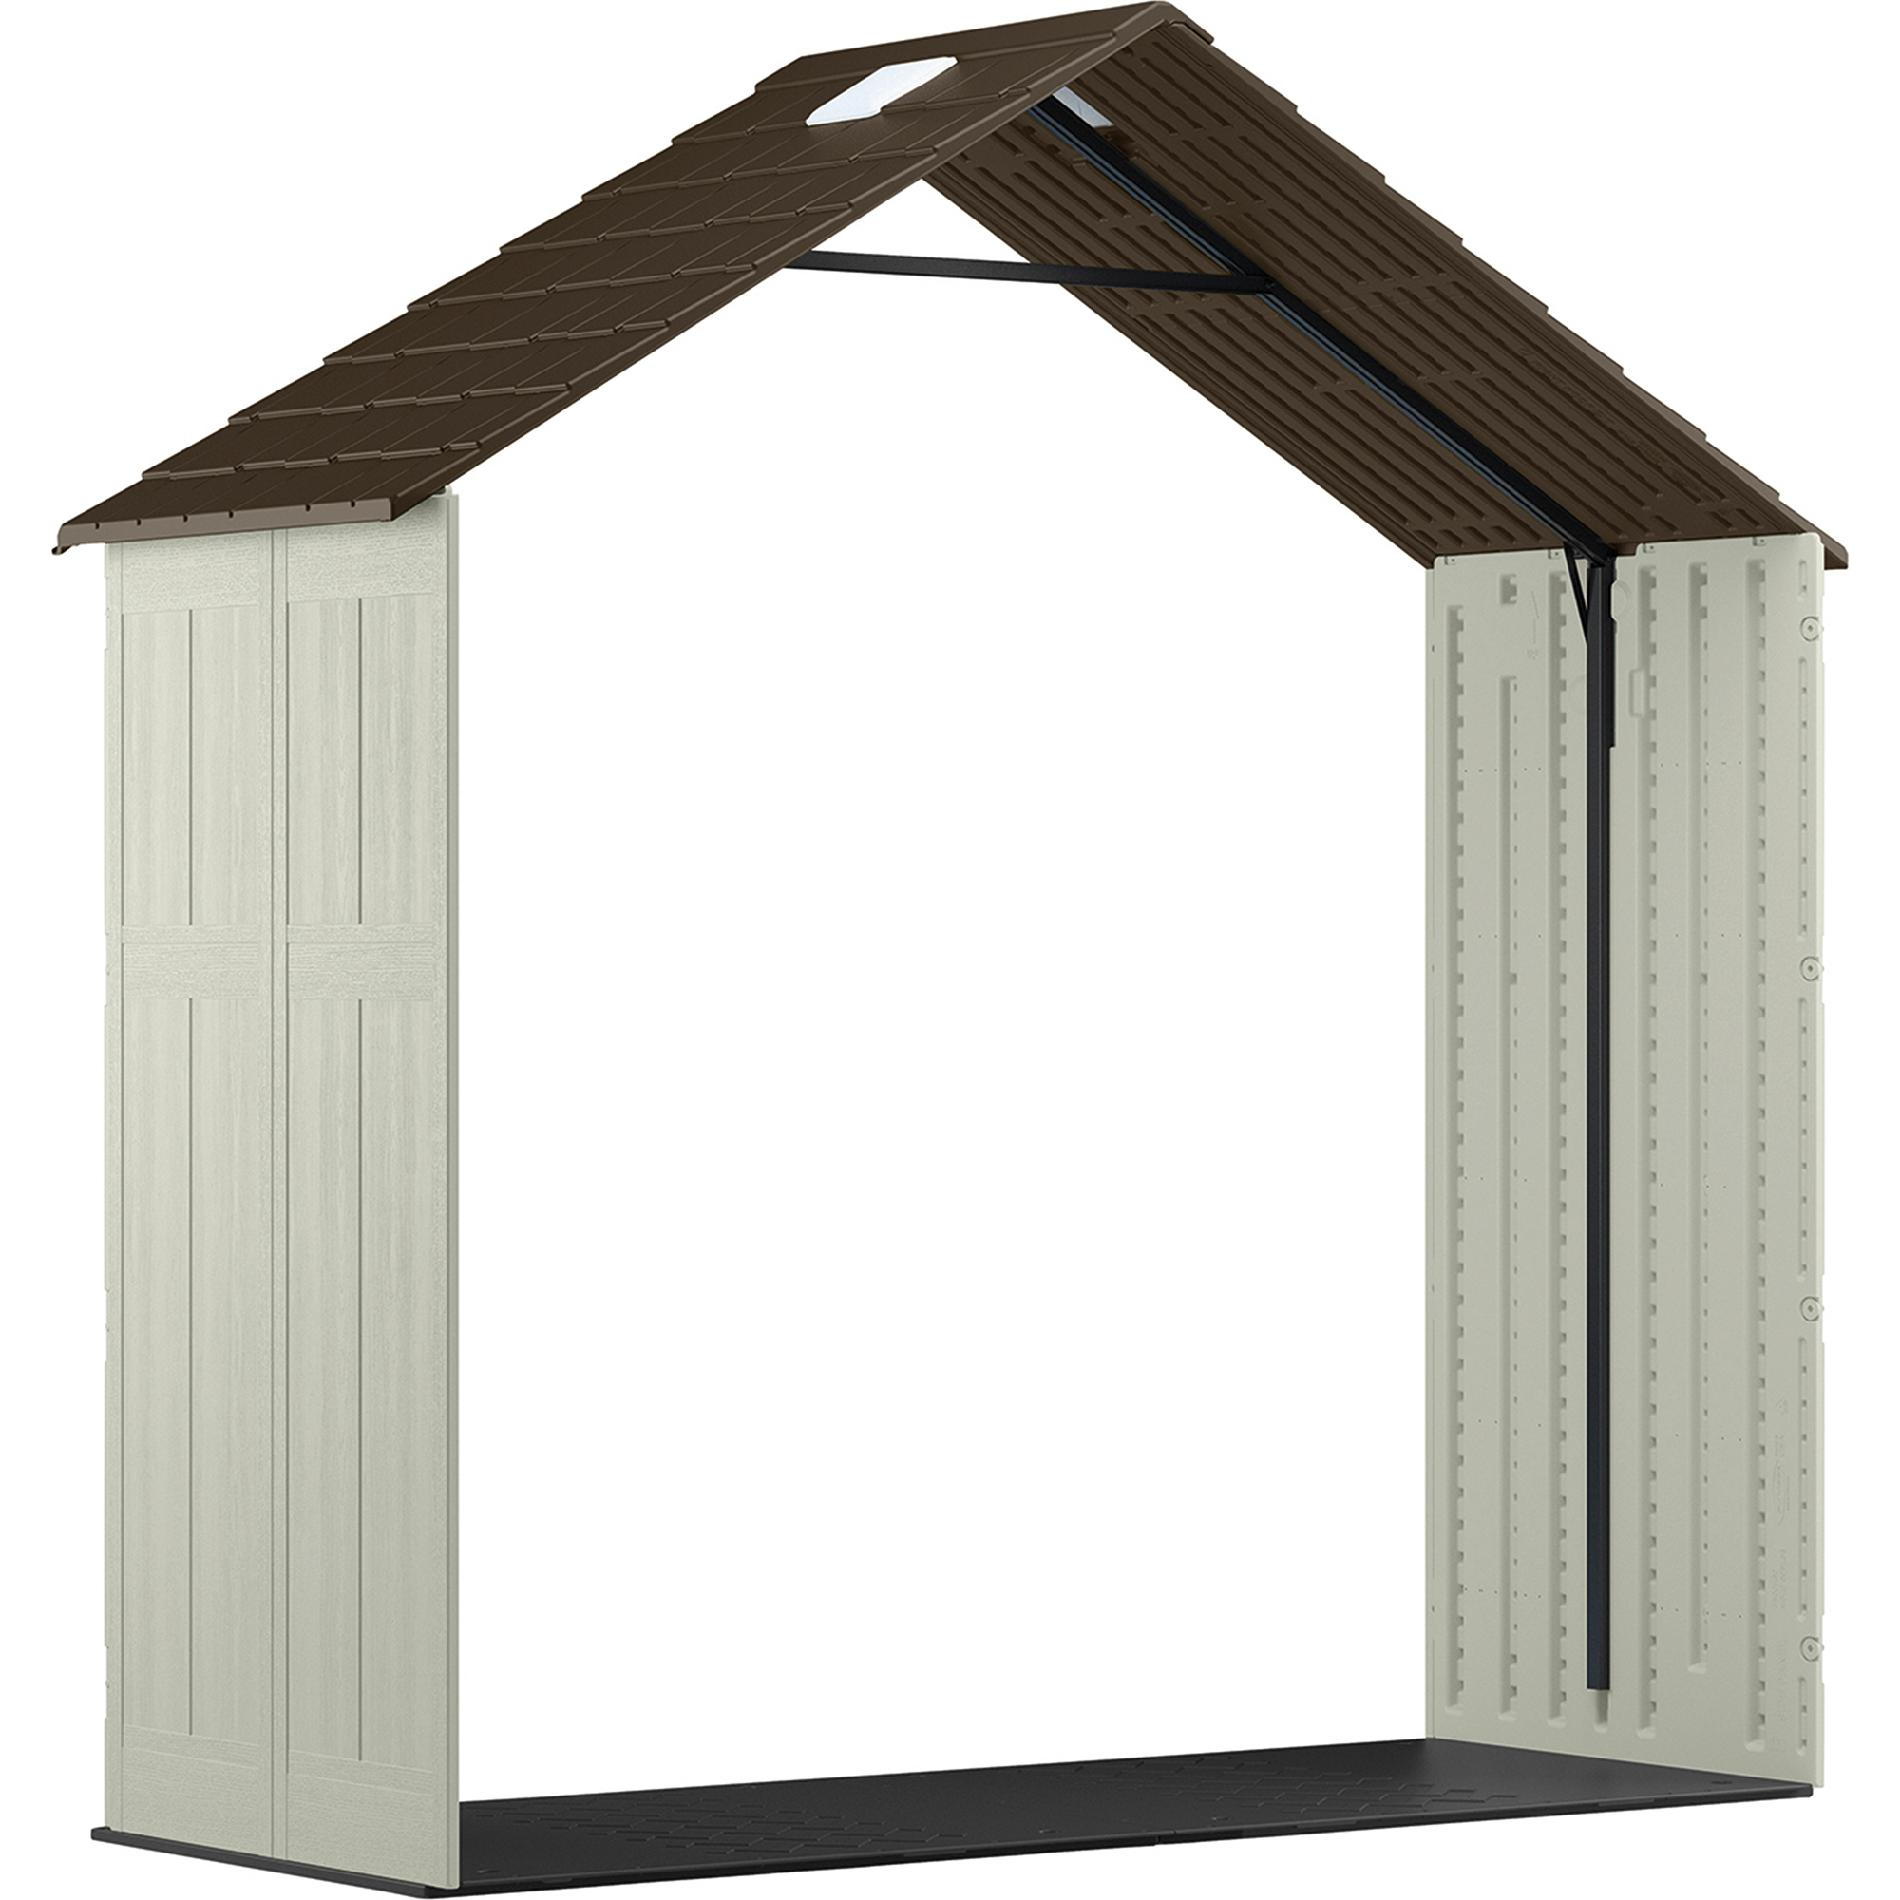 299 99 Sears Craftsman 3 Ft Shed Extension Kit For 65007 8x7 Lawn Garden Sheds Outdoor Storage Sheds S Shed Plans Shed Homes Craftsman Sheds